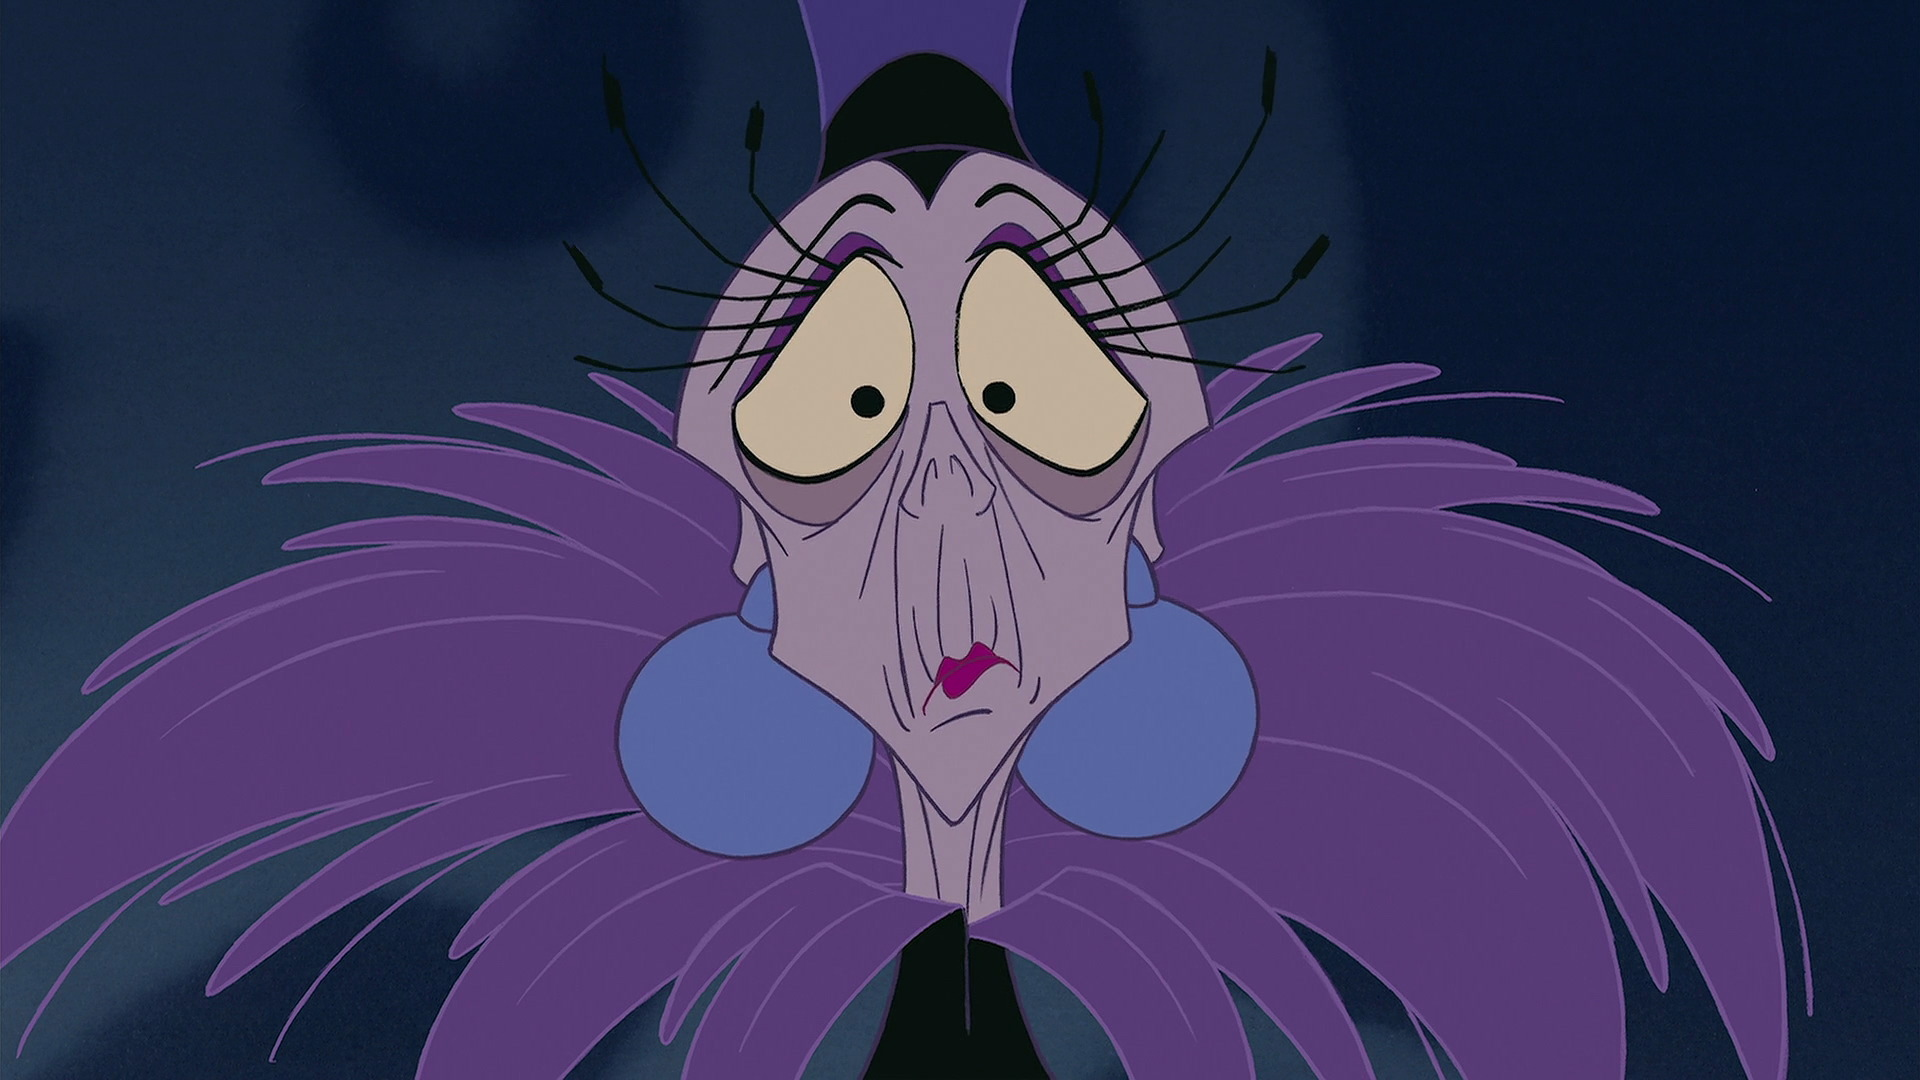 If Yzma From The Emperors New Groove Was An Official Dp Villain